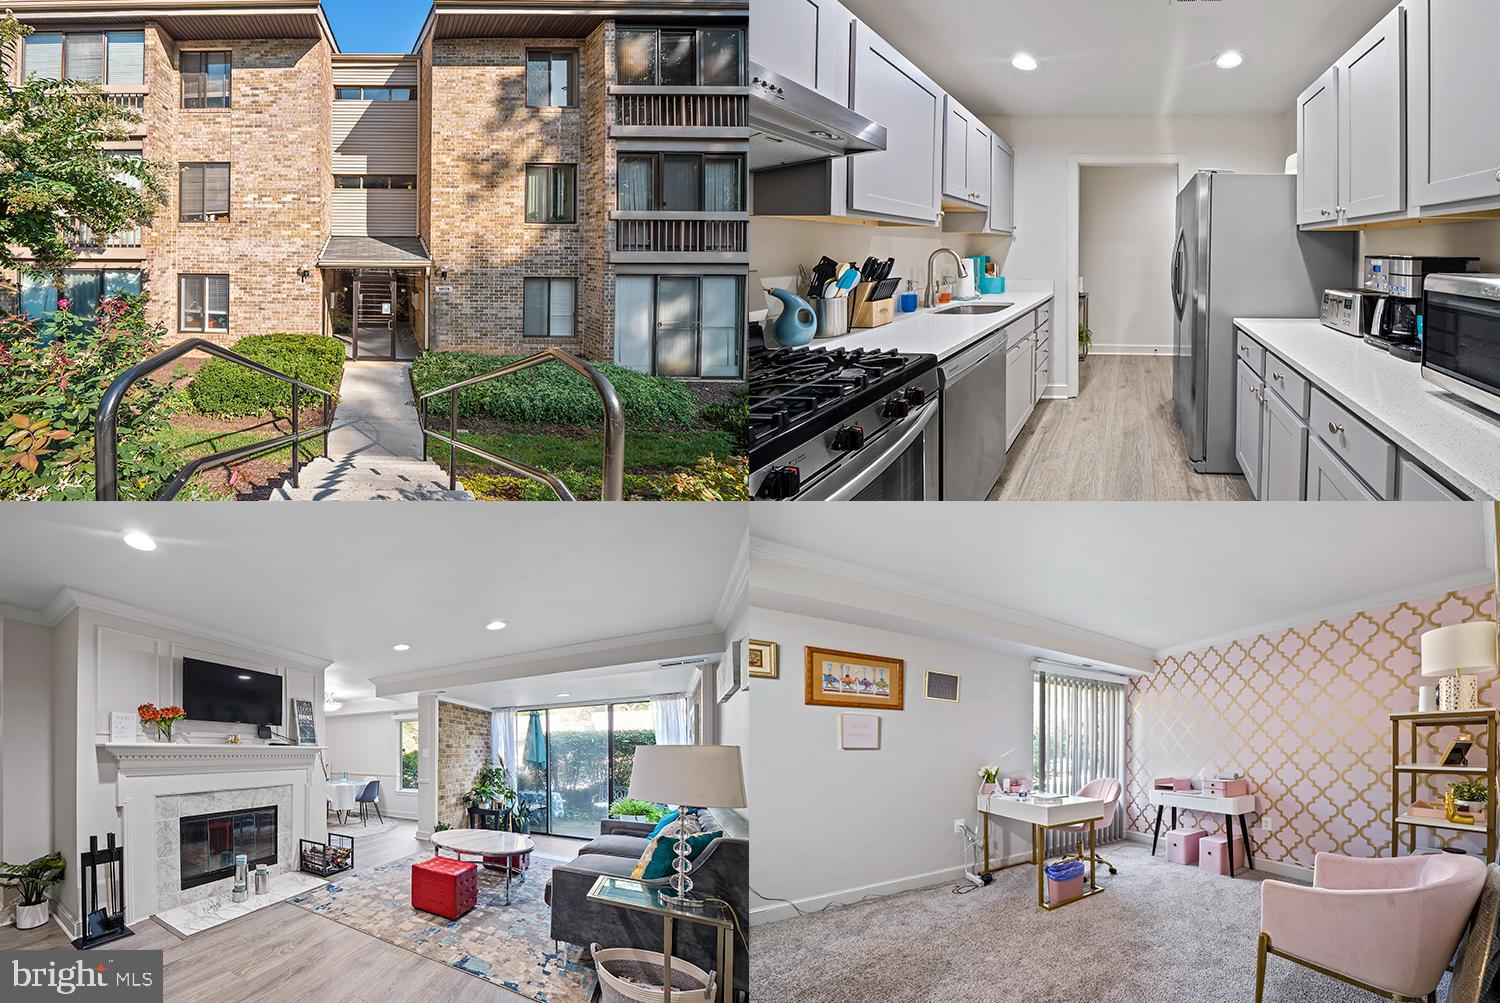 Absolutely stunning two-bedroom condo in the heart of Columbia! The entire condo was remodeled just